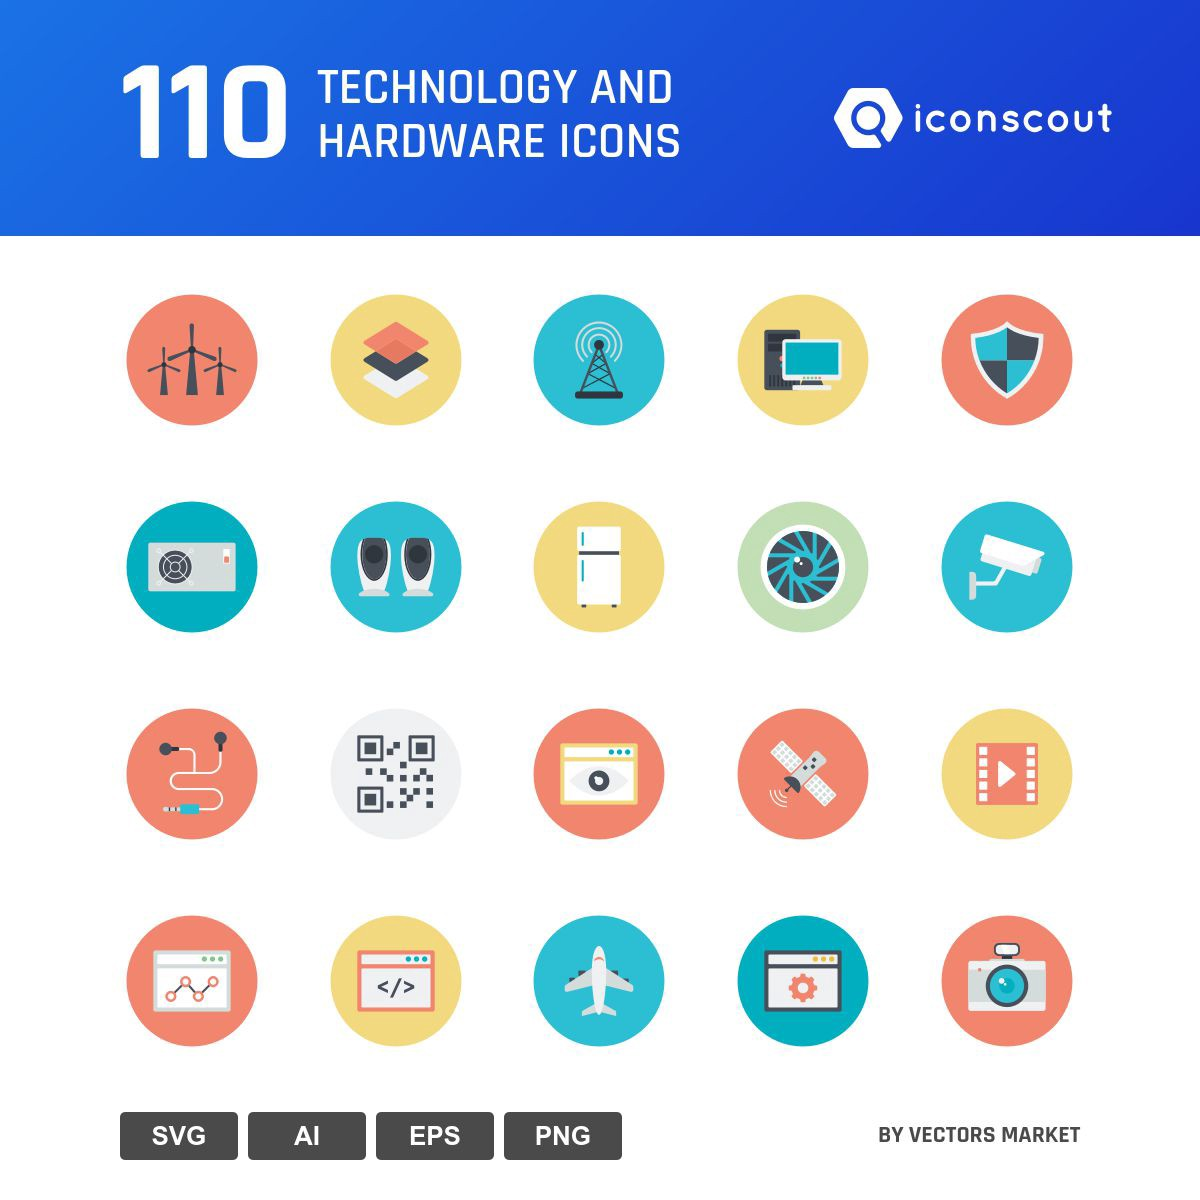 Technology And Hardware icons by Vectors Market